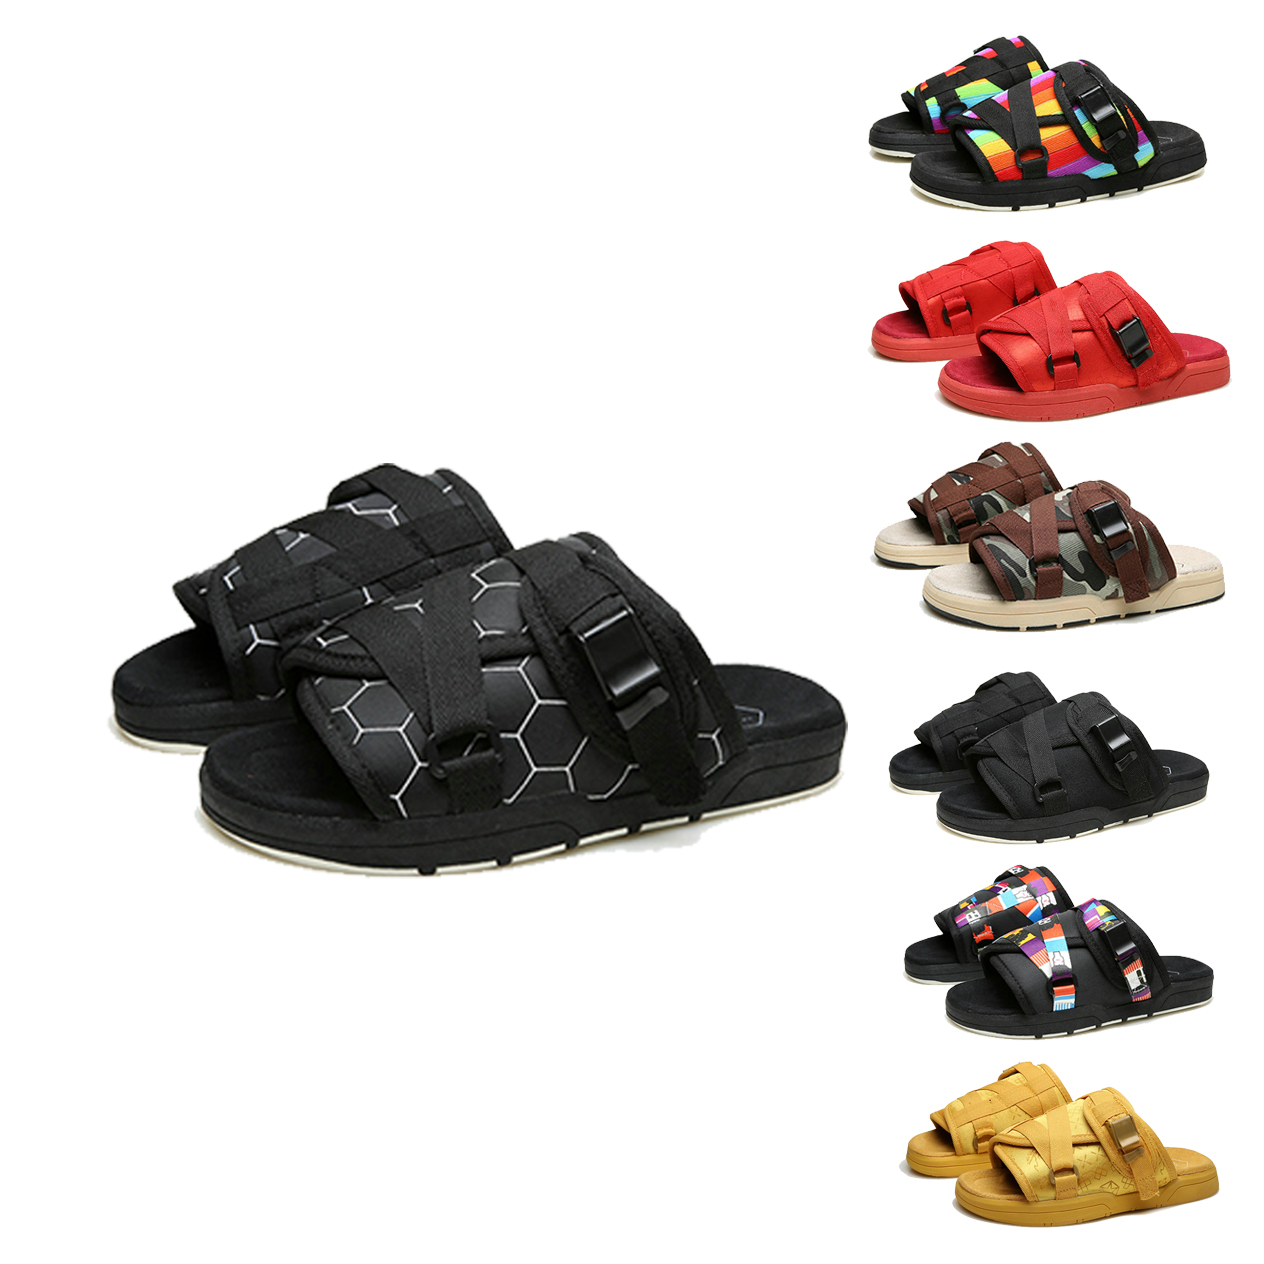 2019 fashion non-slip design causal <strong>sandal</strong> men, custom logo print tag comfortable sport men's <strong>sandals</strong> for summer